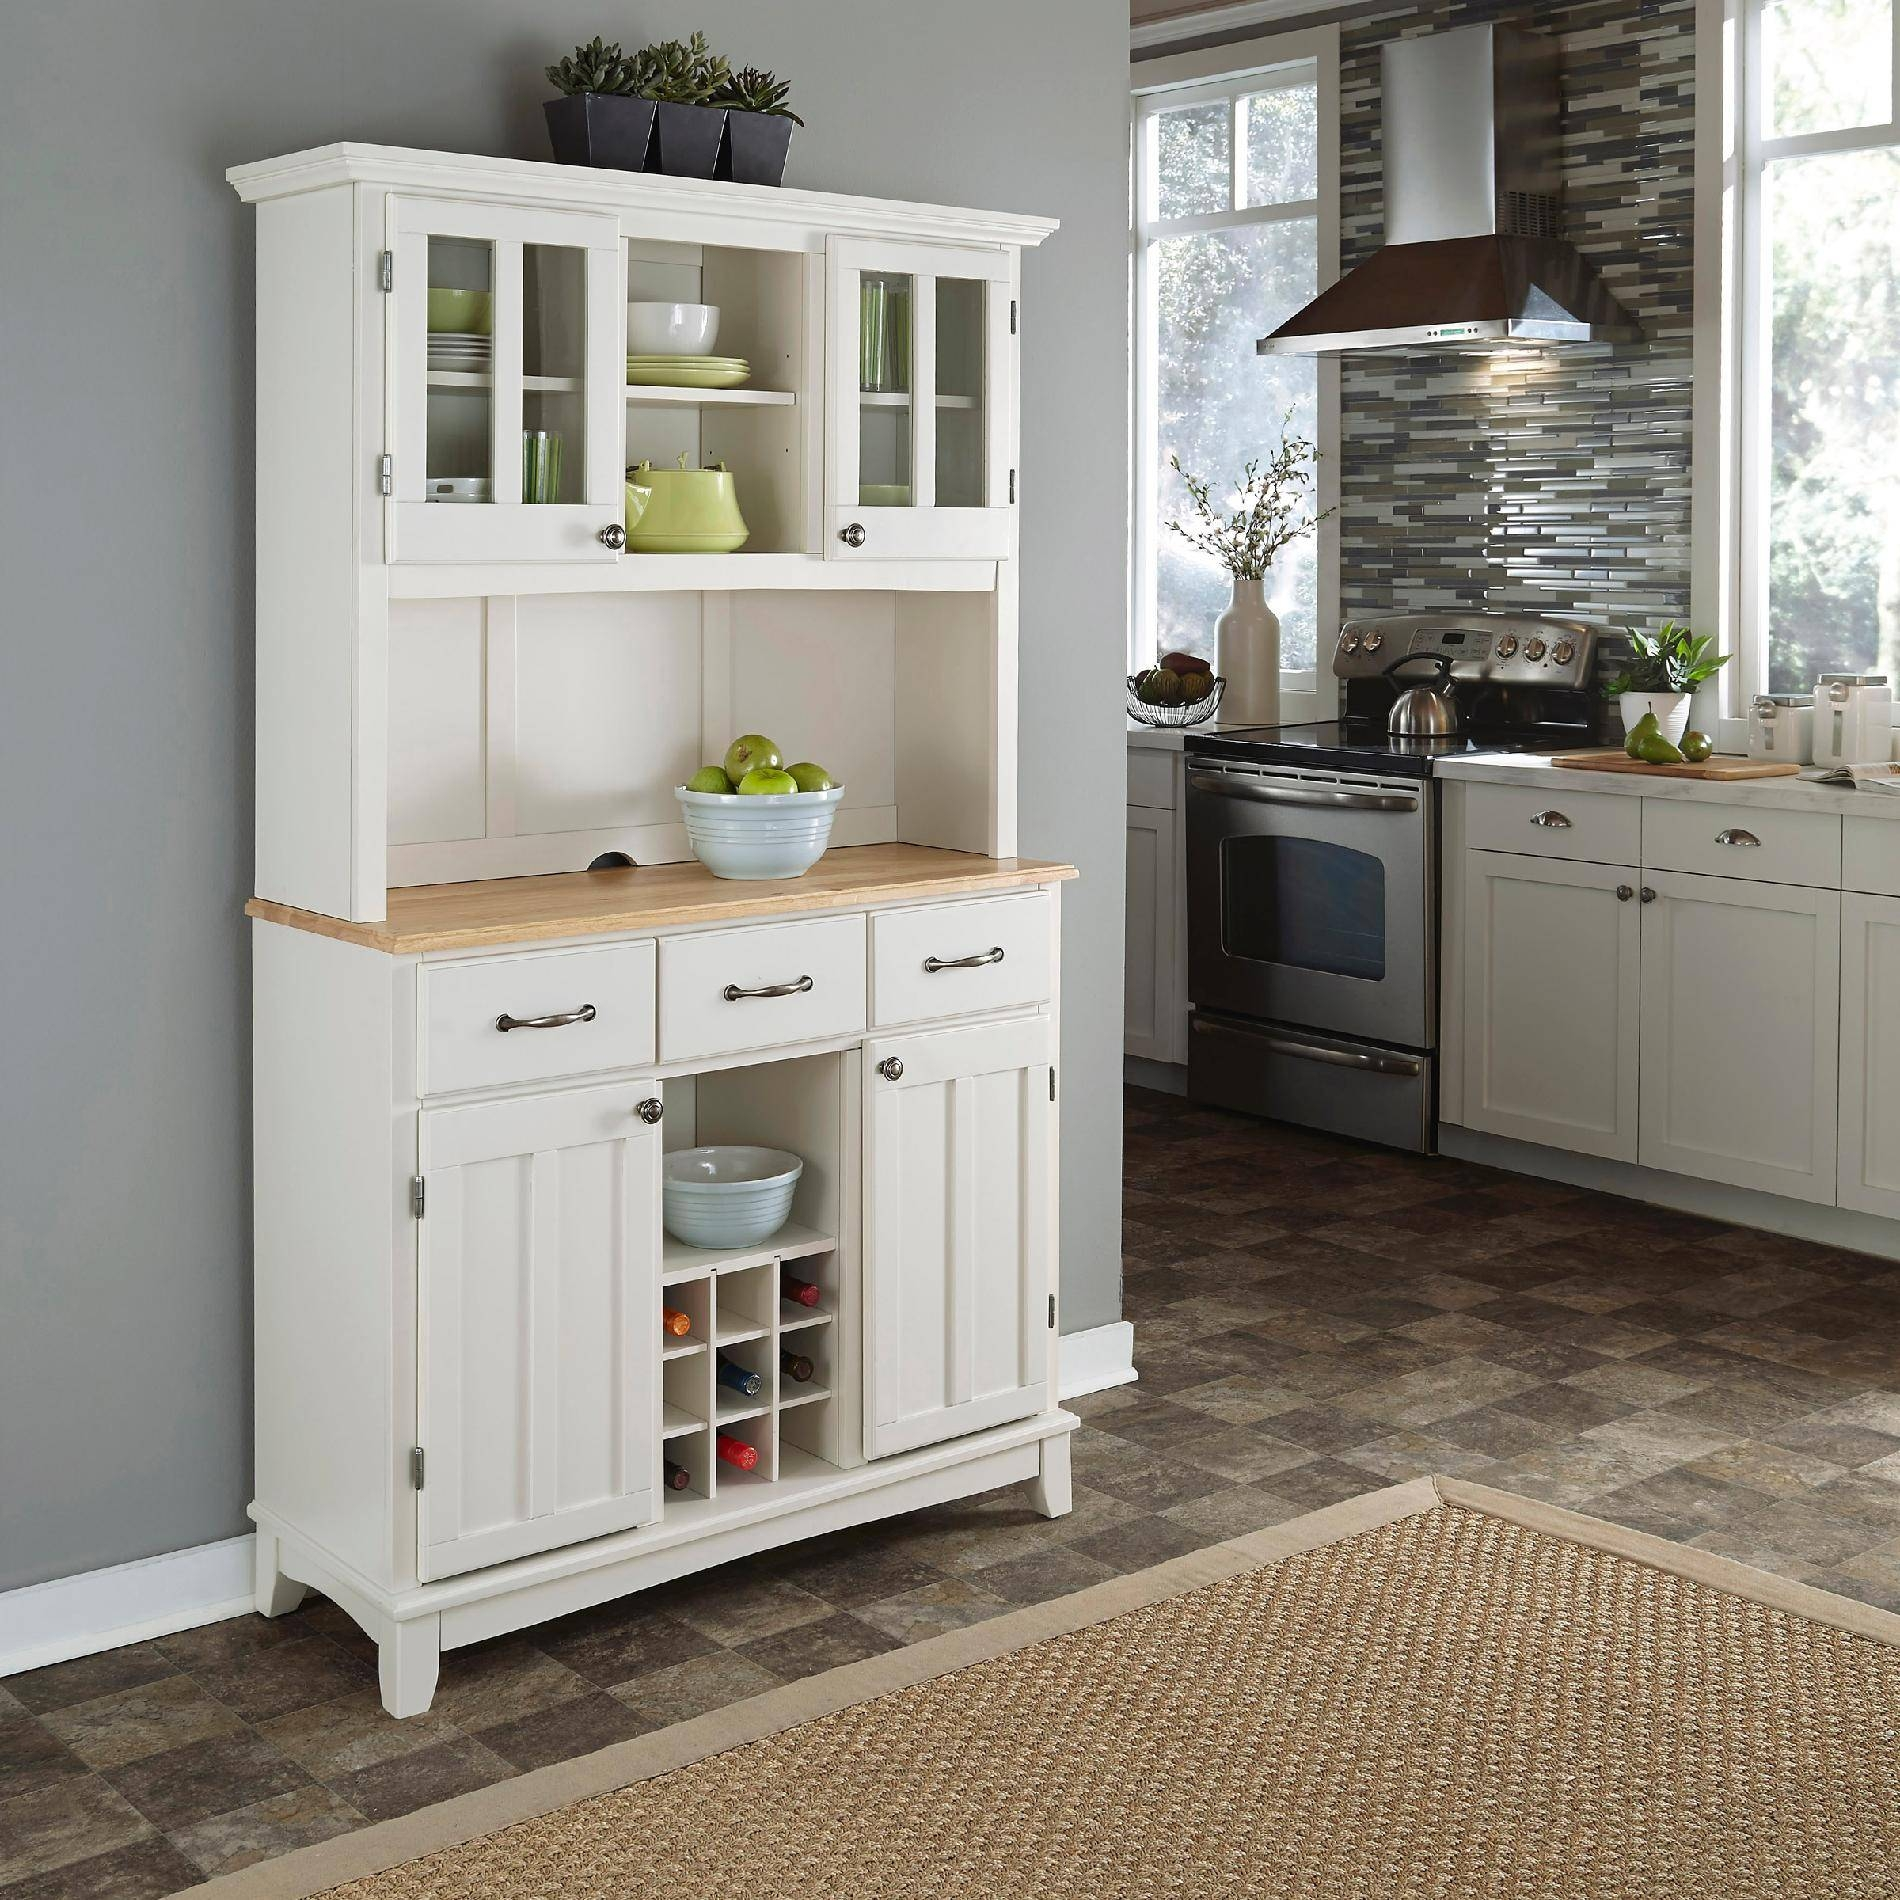 Stylish Dining Room Buffet Hutch — Rocket Uncle Rocket Uncle Within Latest Sideboards And Hutches (View 13 of 15)